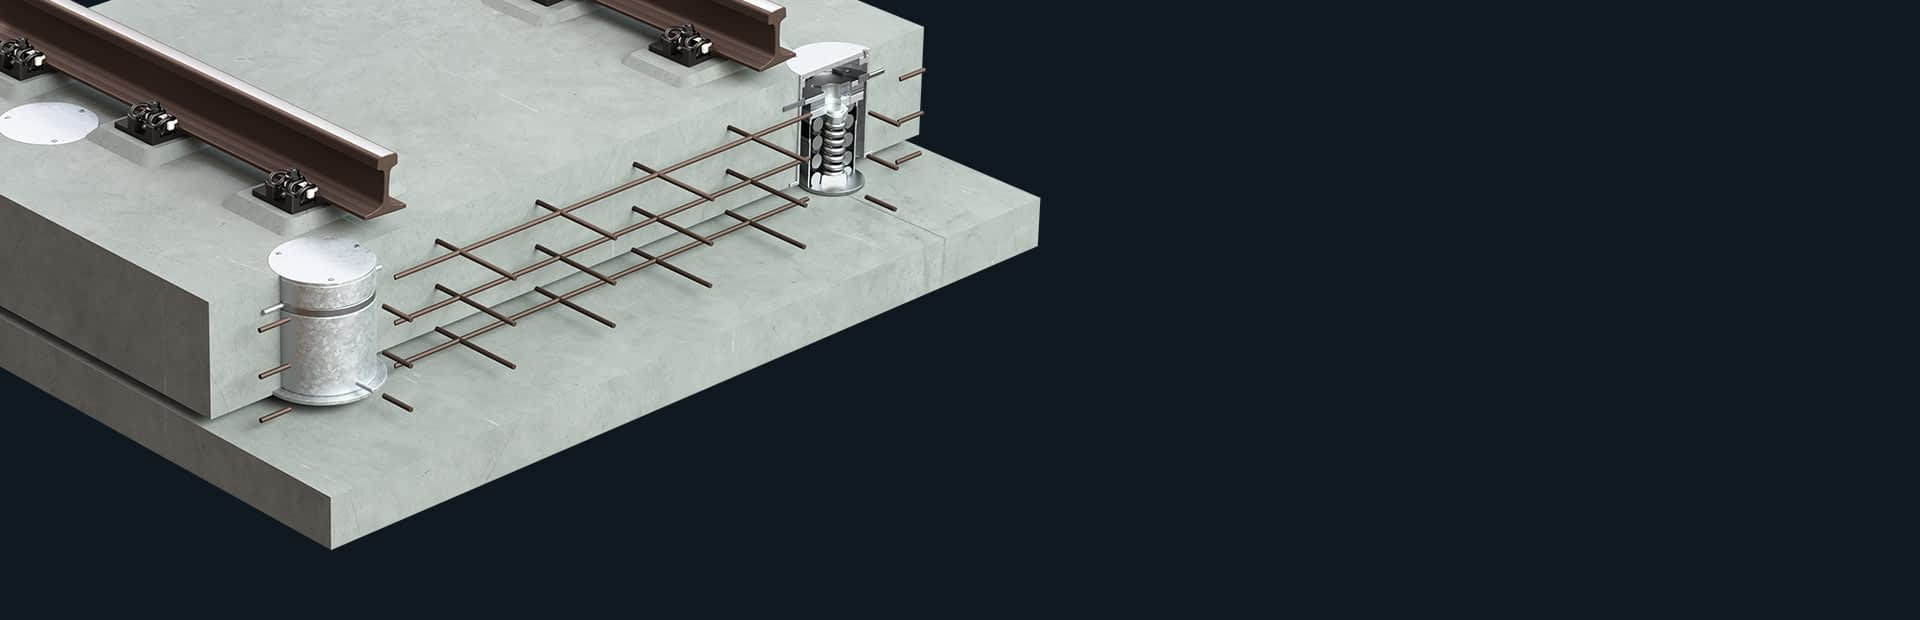 tiantie-group_products_steel-spring_separator-image_1920x620